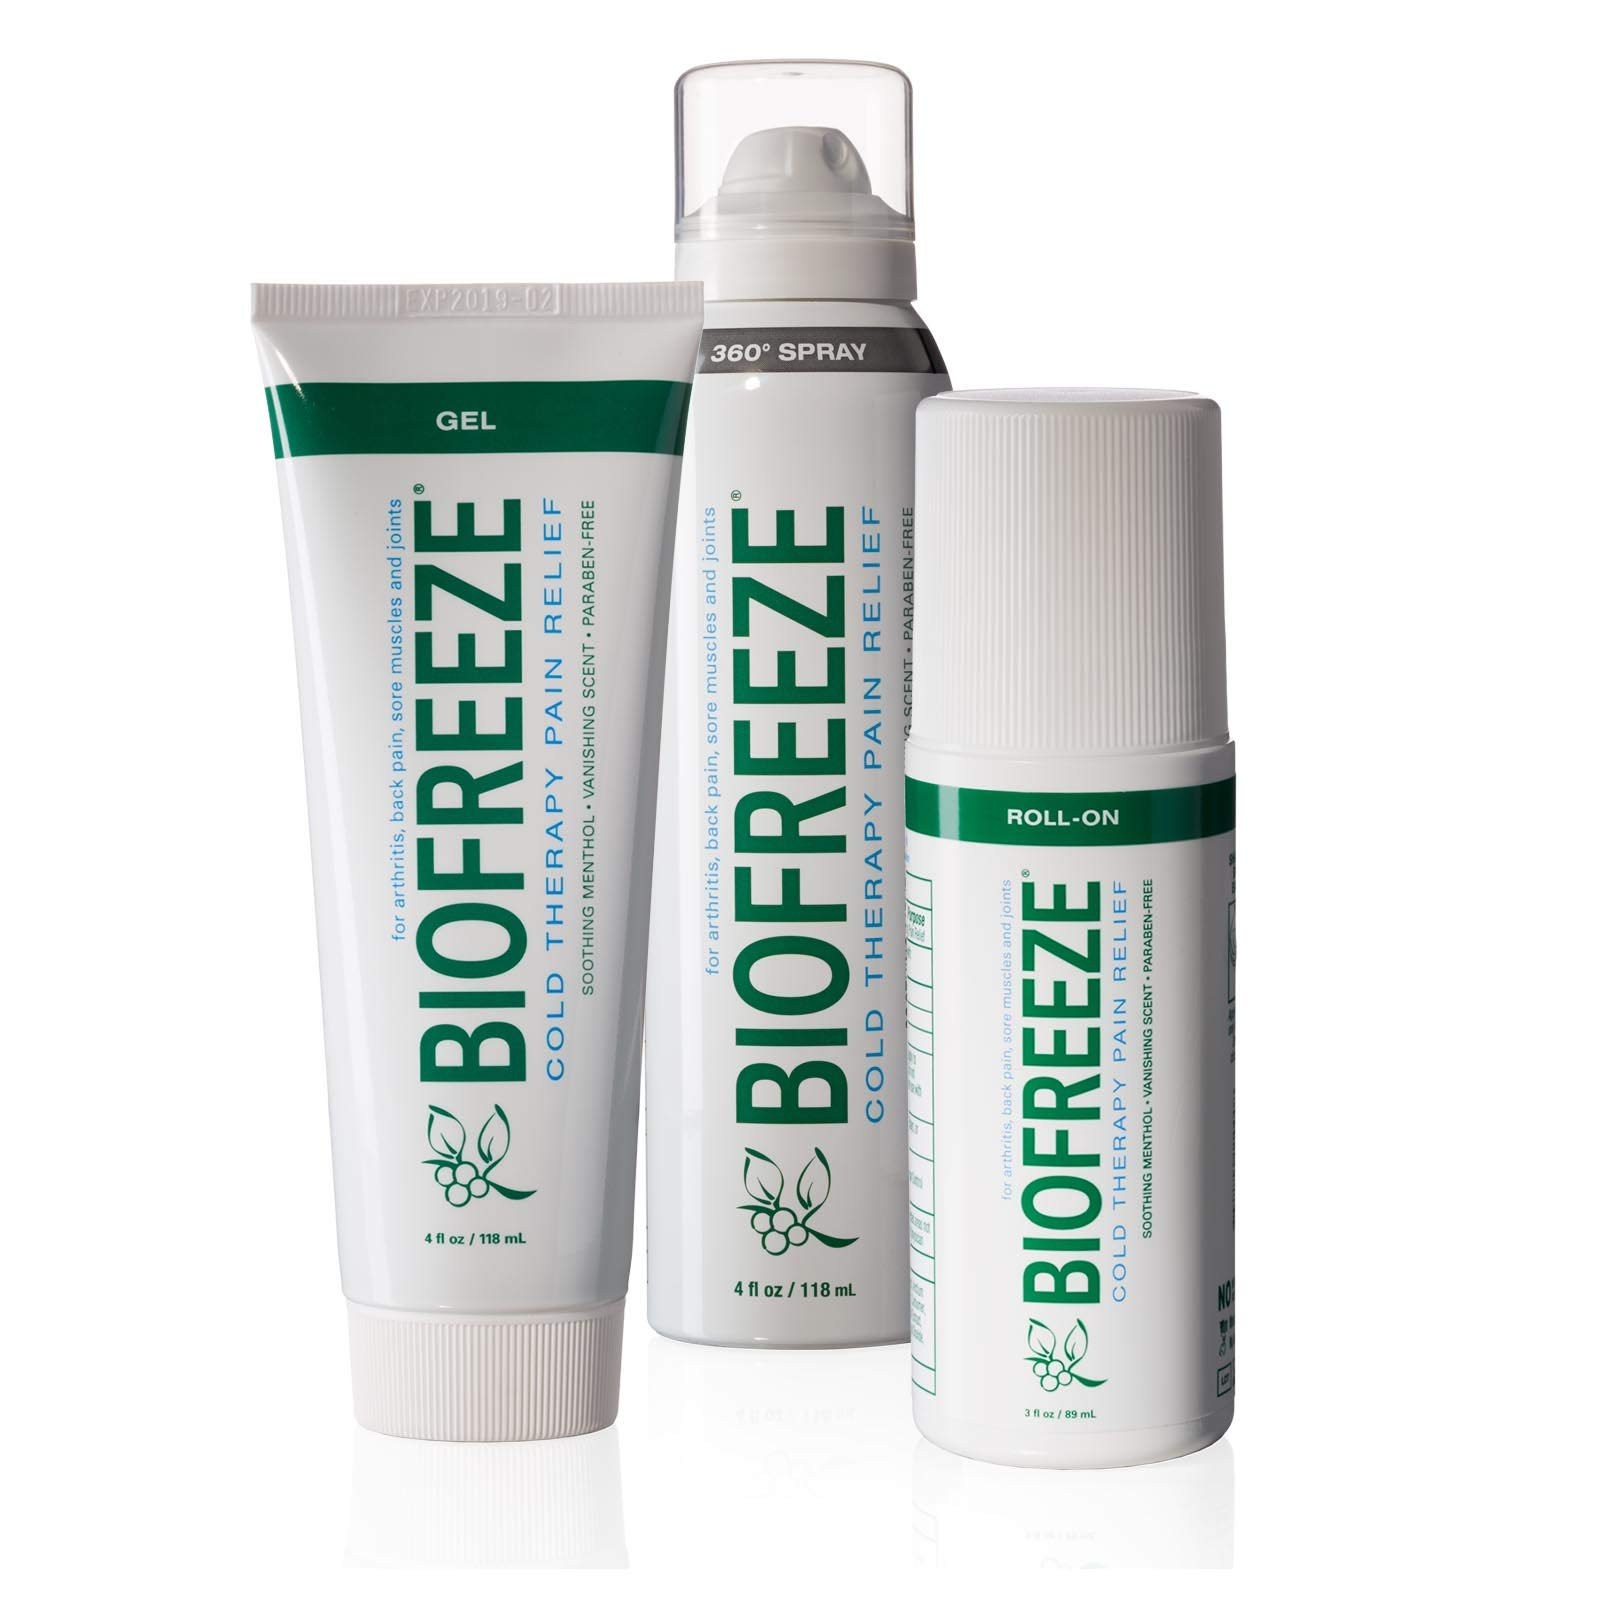 Biofreeze Pain Relief Gel Multi-Pack, Variety Pack Includes Tube, Spray, and Roll-On Formulas of the #1 Clinically Recommended Topical Analgesic (Packaging May Vary) by Biofreeze